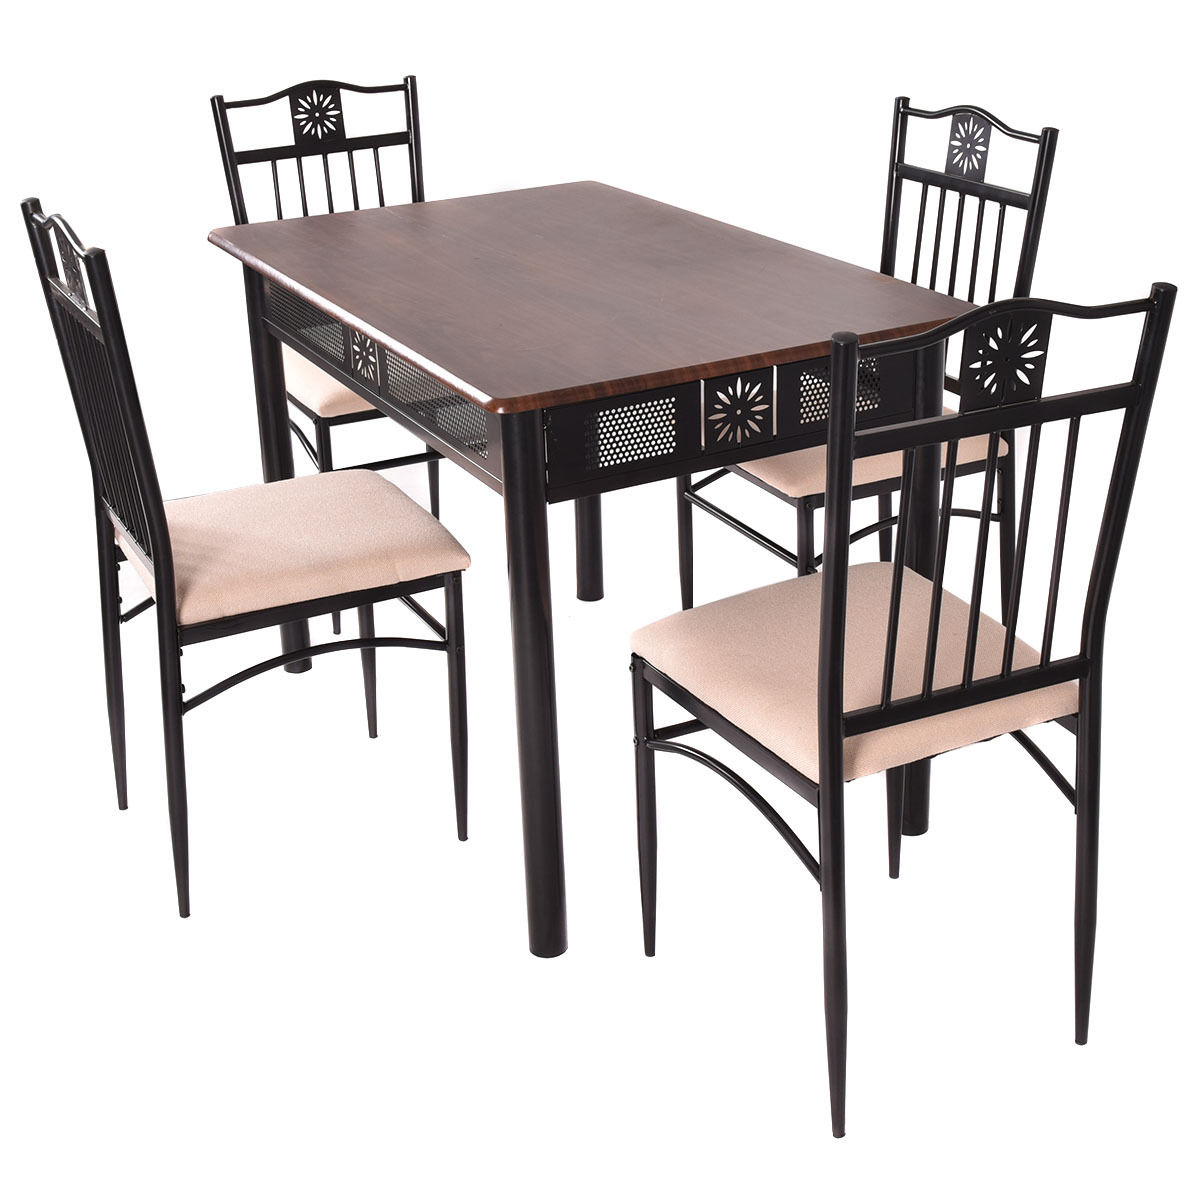 Set Of 4 Kitchen Chairs: Costway 5 Piece Dining Set Wood Metal Table And 4 Chairs